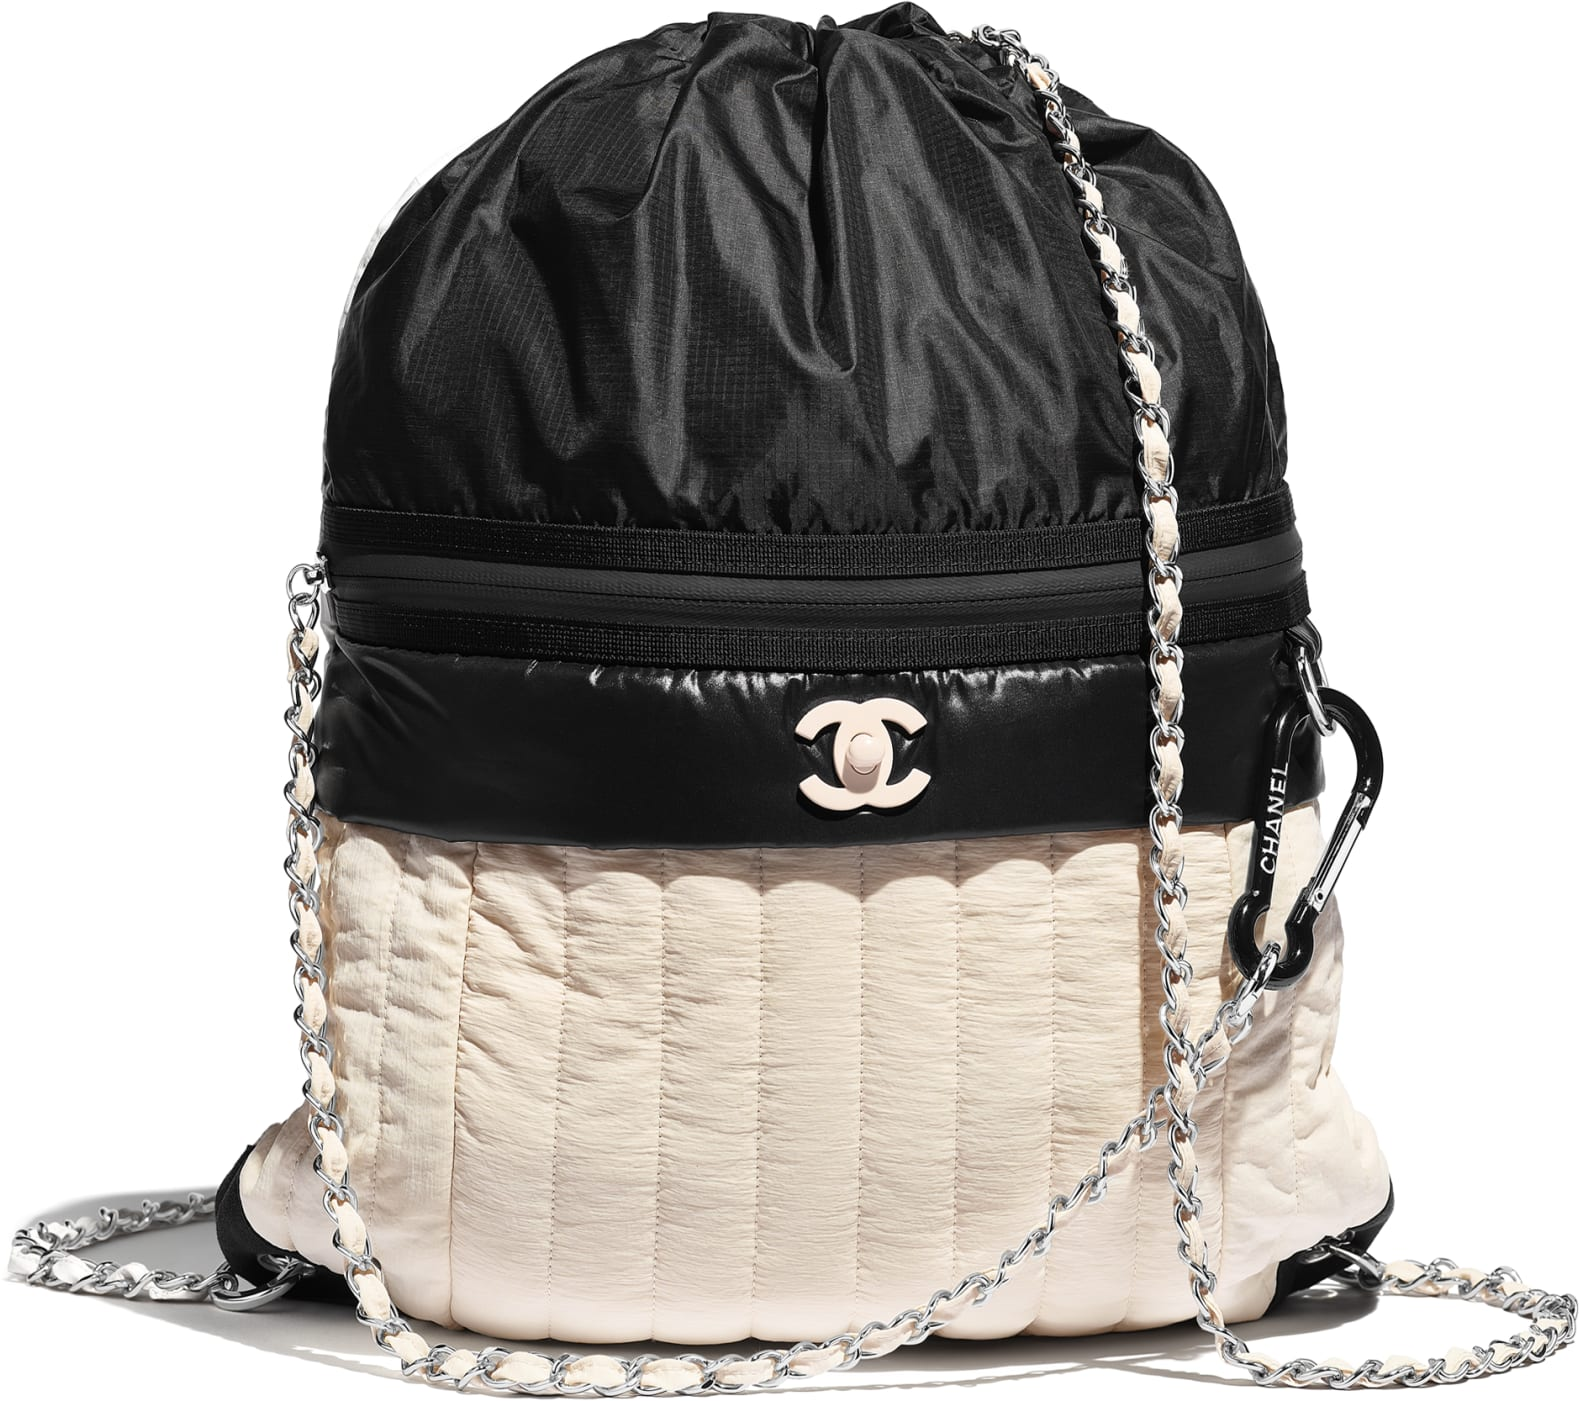 Zaino in nylon e metallo Chanel a 2 550 euro